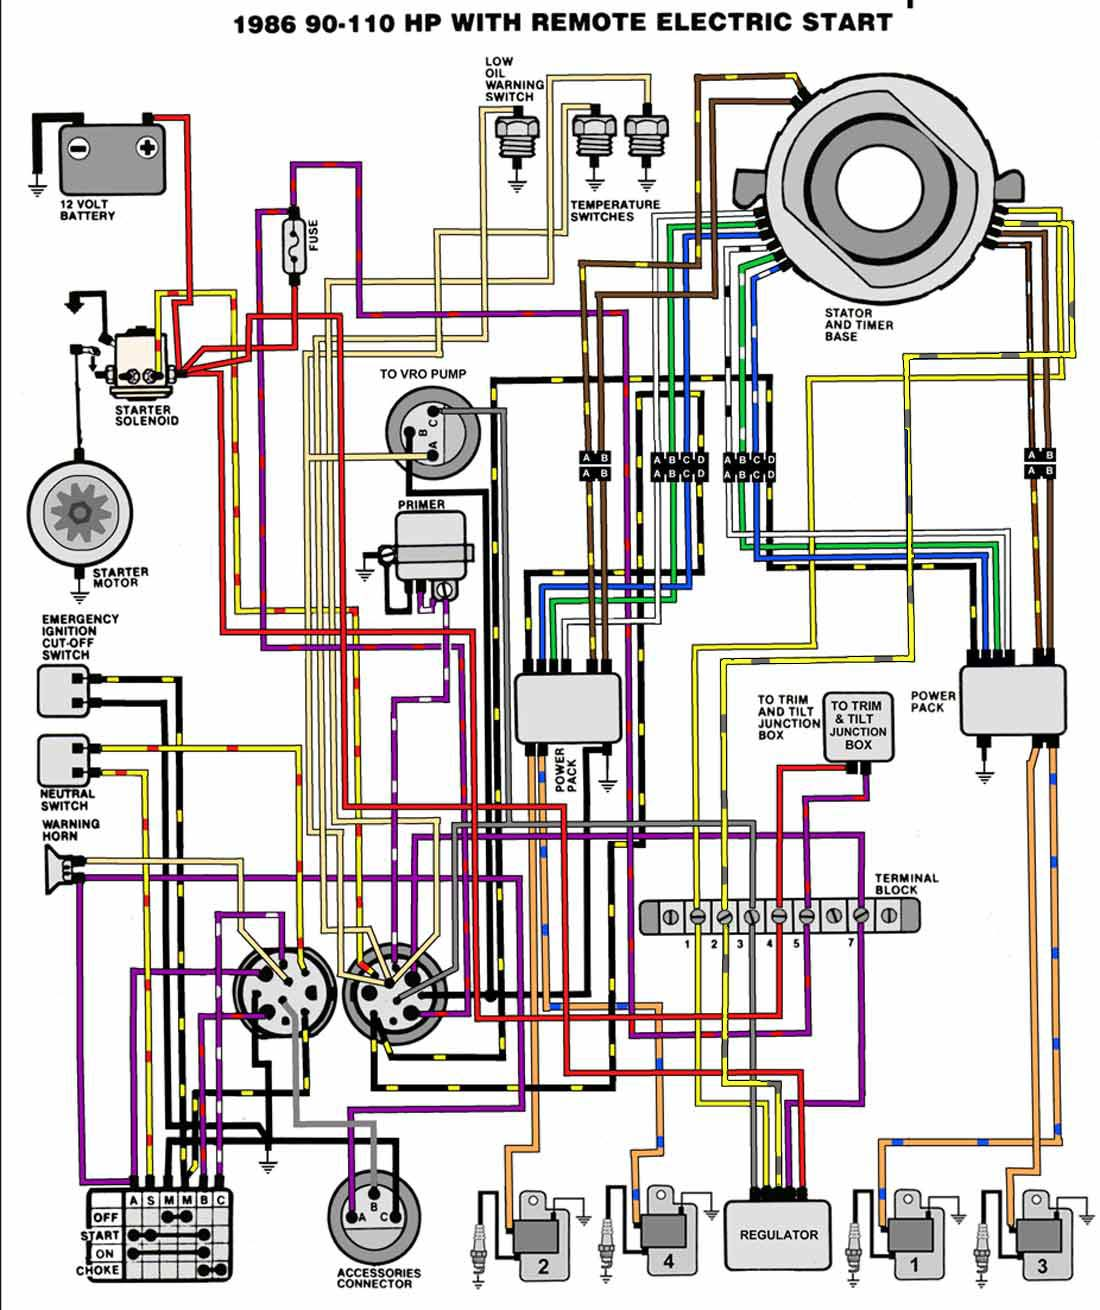 96 Johnson Outboard Ingnition Wiring Diagram Archive Of Automotive 2182 Cub 120 Hp Evinrude Detailed Schematics Rh Jvpacks Com